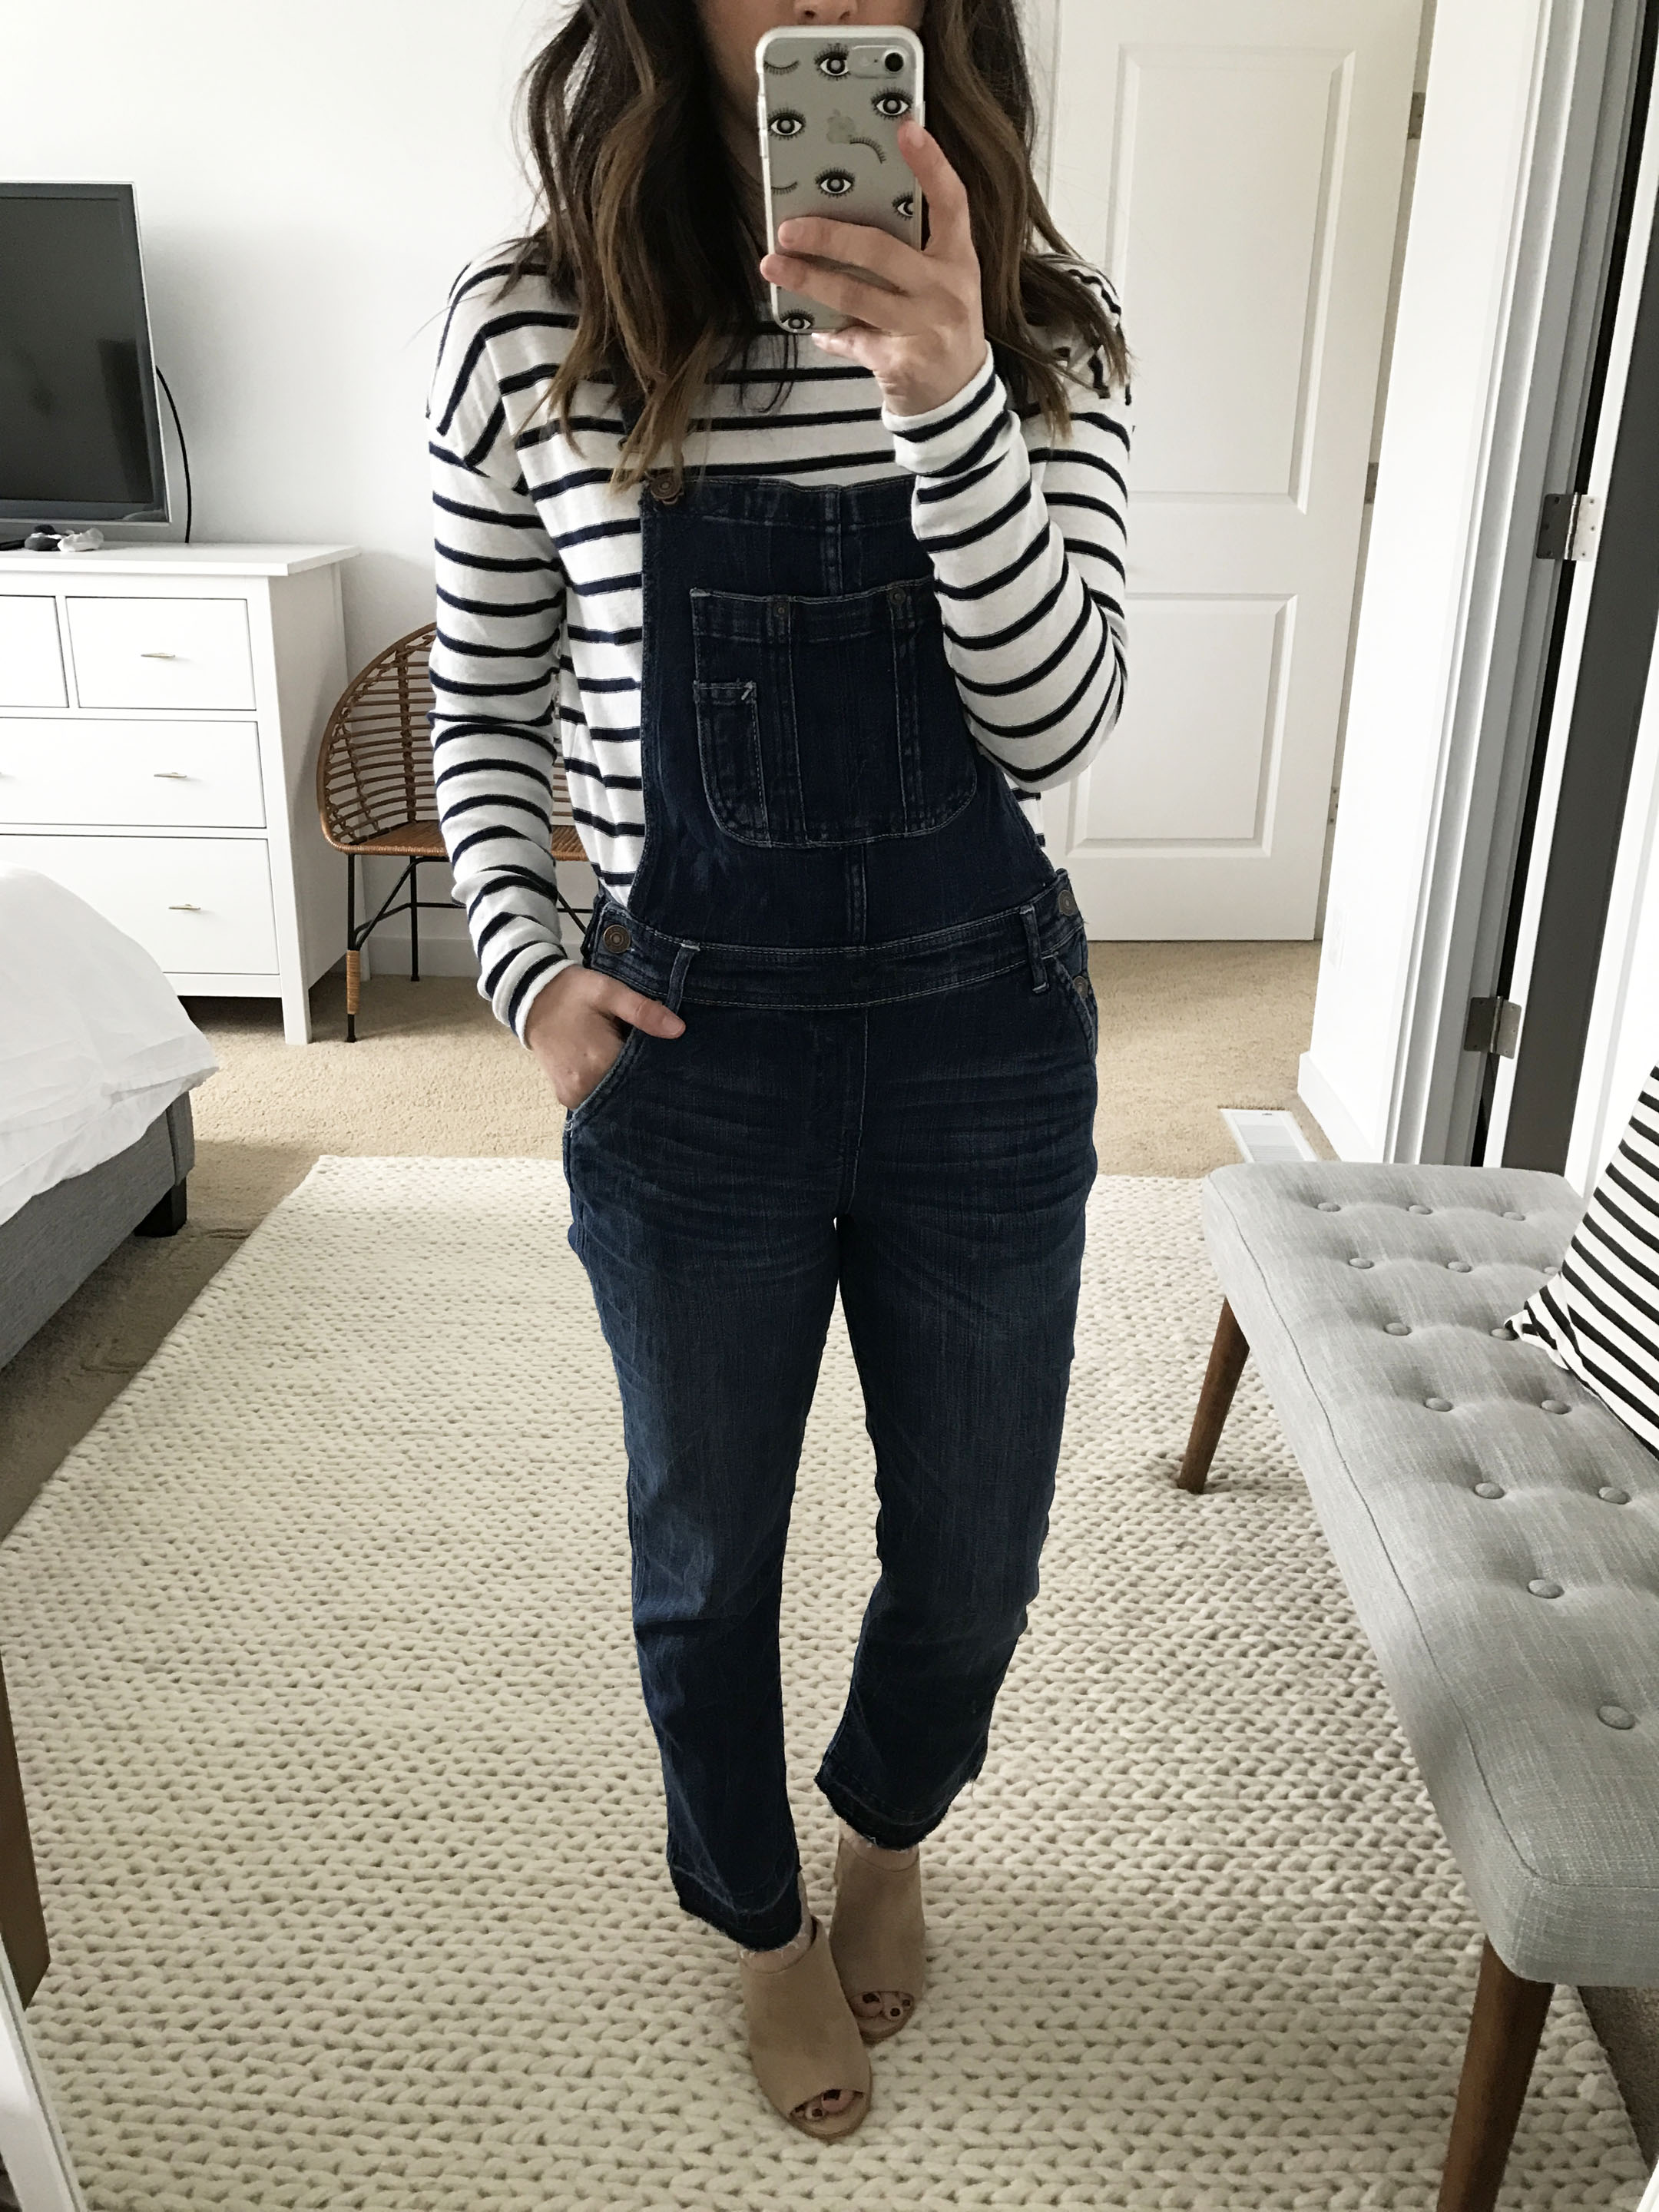 Abercrombie & Fitch overalls 3